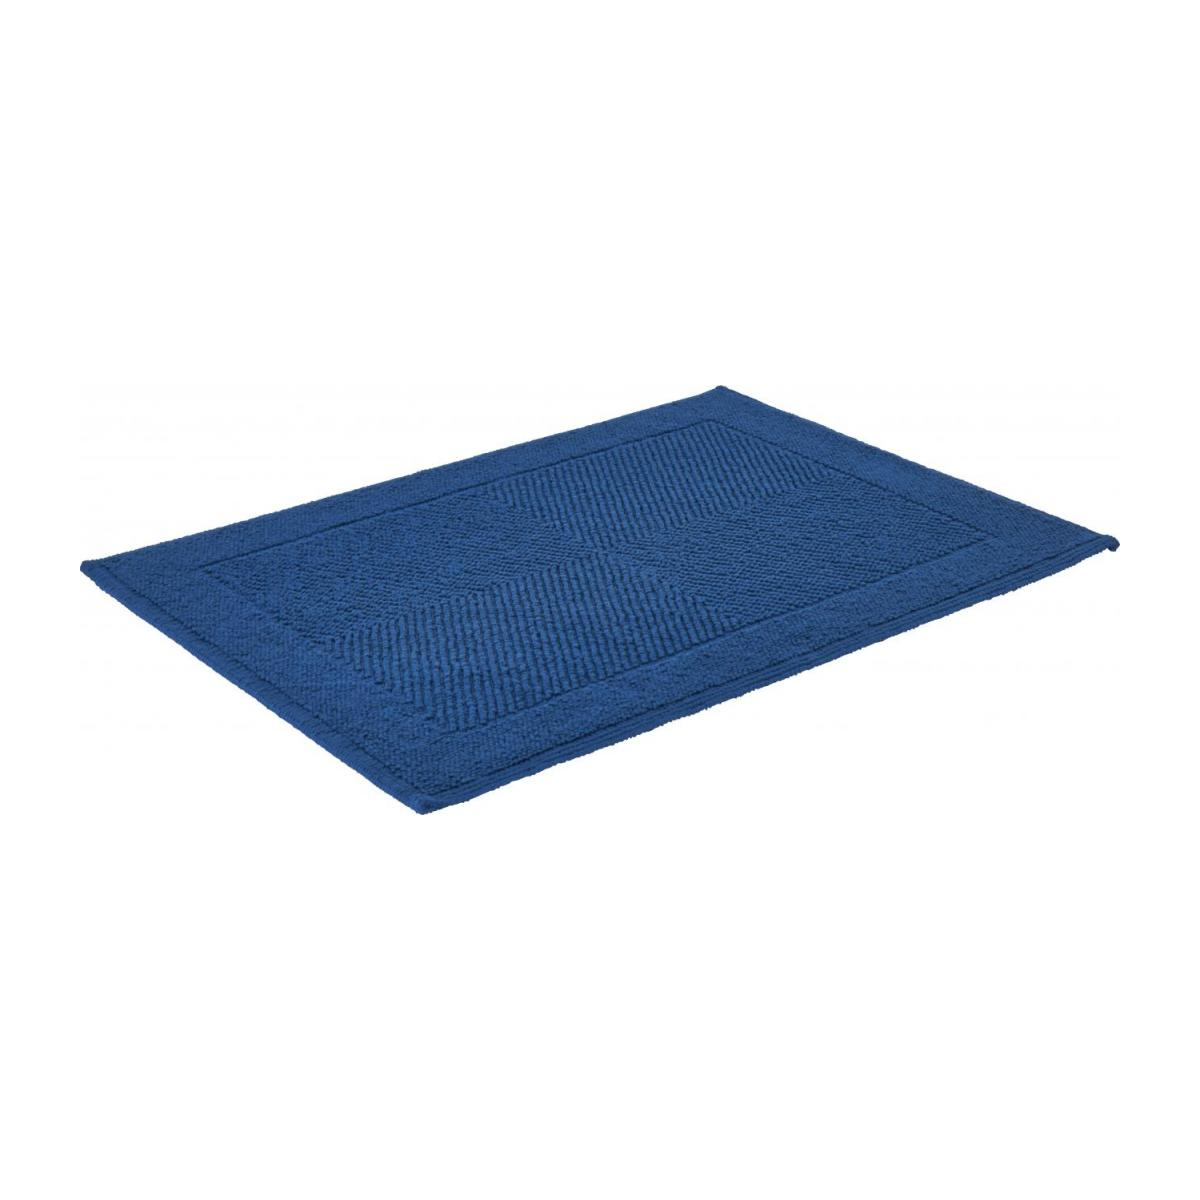 Blue bath mat n°2